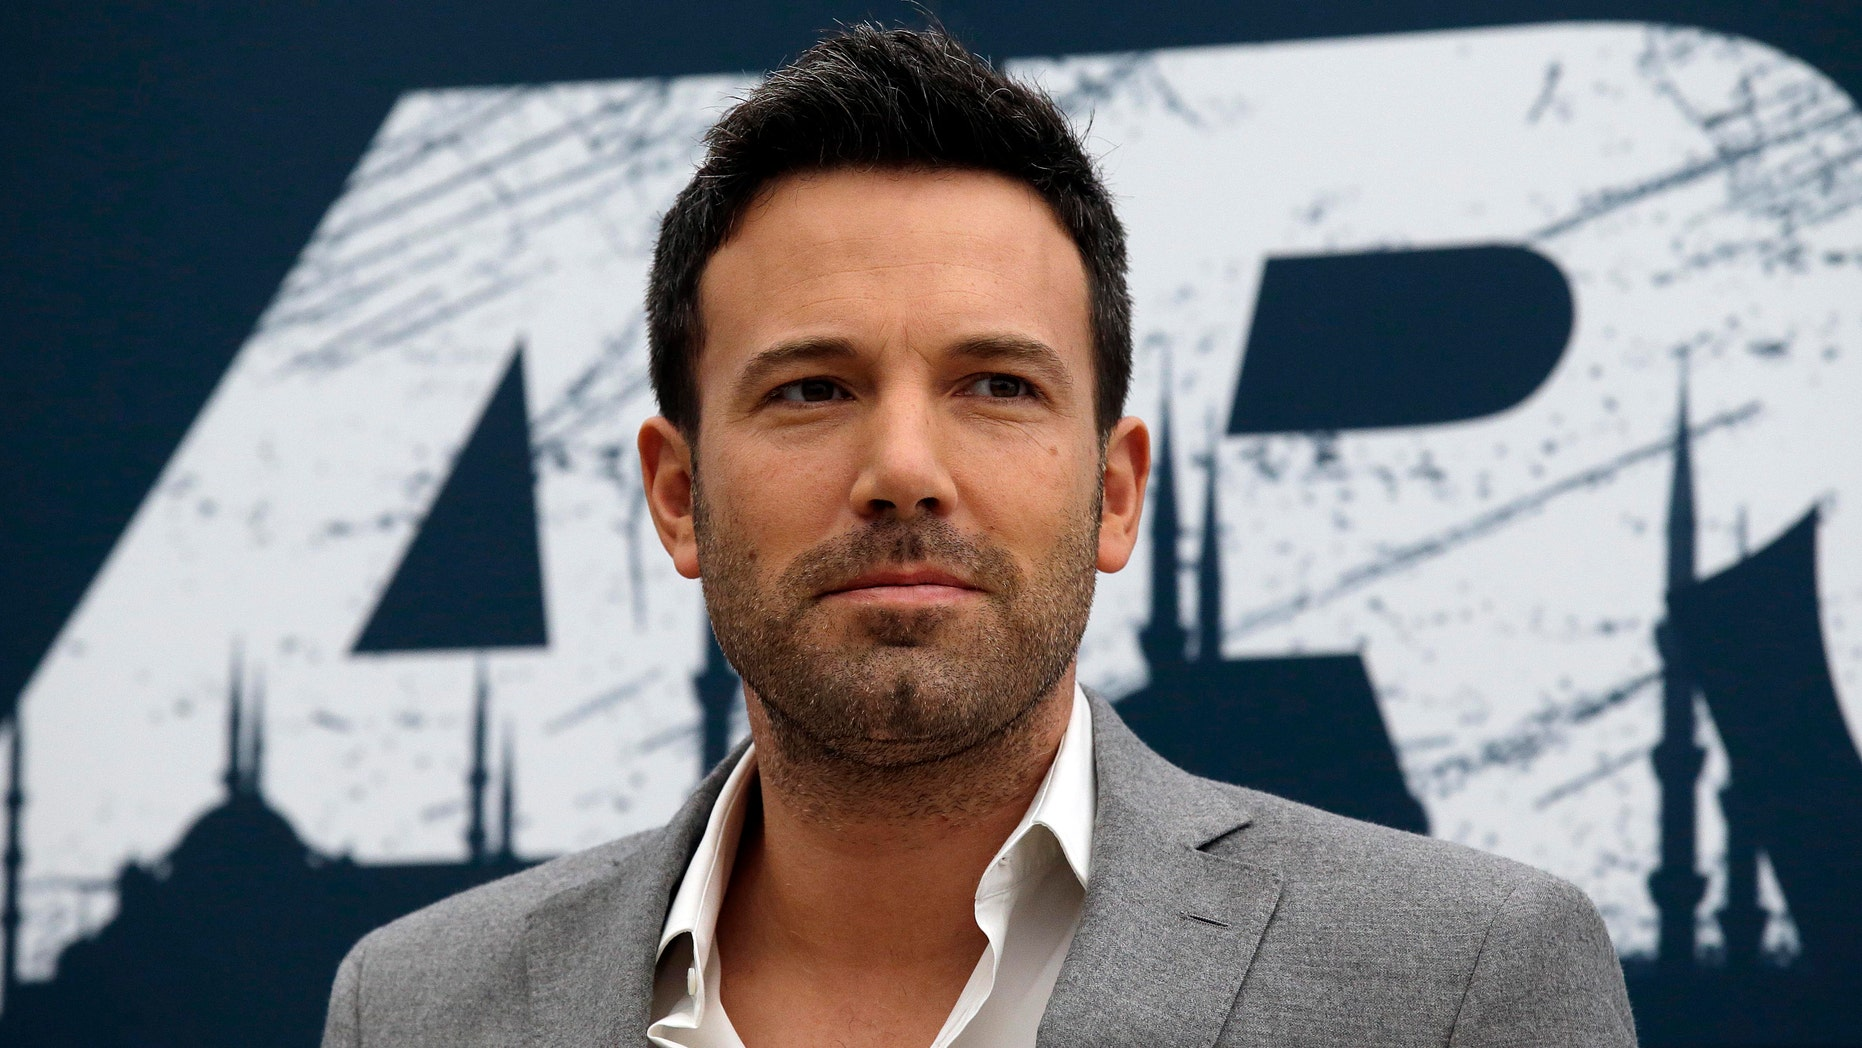 """Actor Ben Affleck poses for photographers during a photocall to present his movie """"Argo"""" in Rome, Friday, Oct. 19, 2012. (AP Photo/Gregorio Borgia)"""